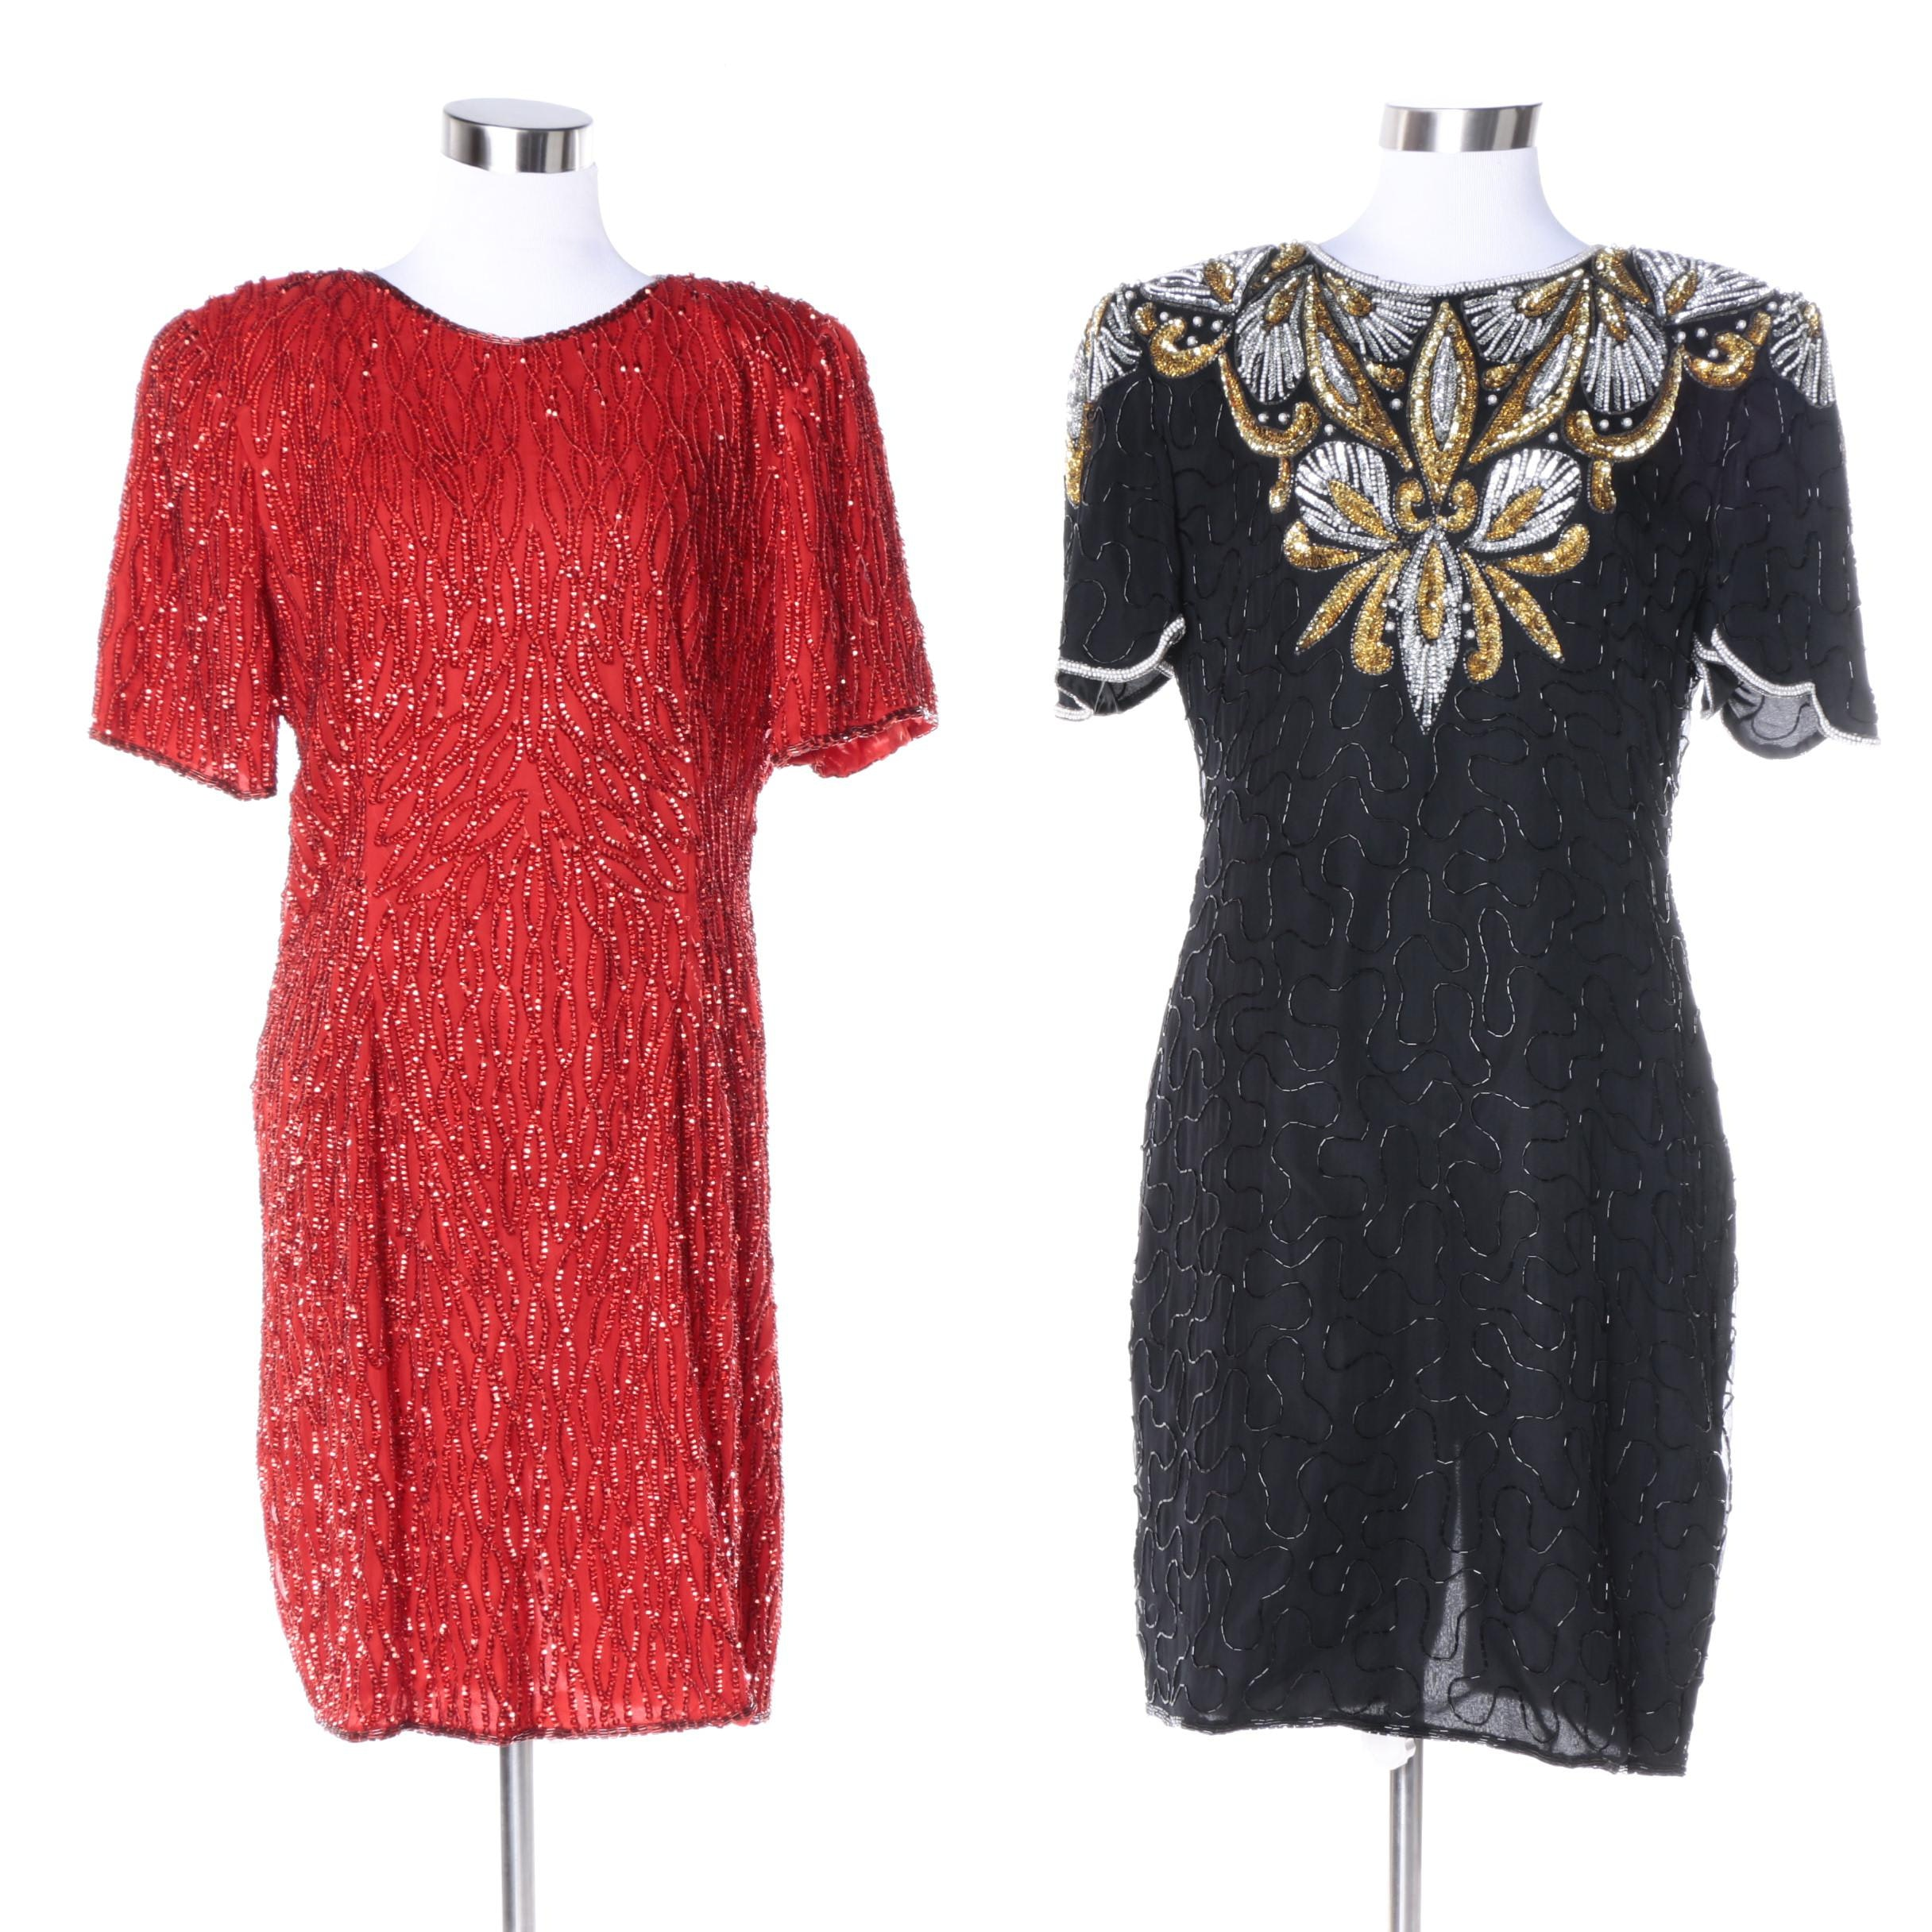 1980s Embellished Silk Dresses Including Denise Elle and Stenay